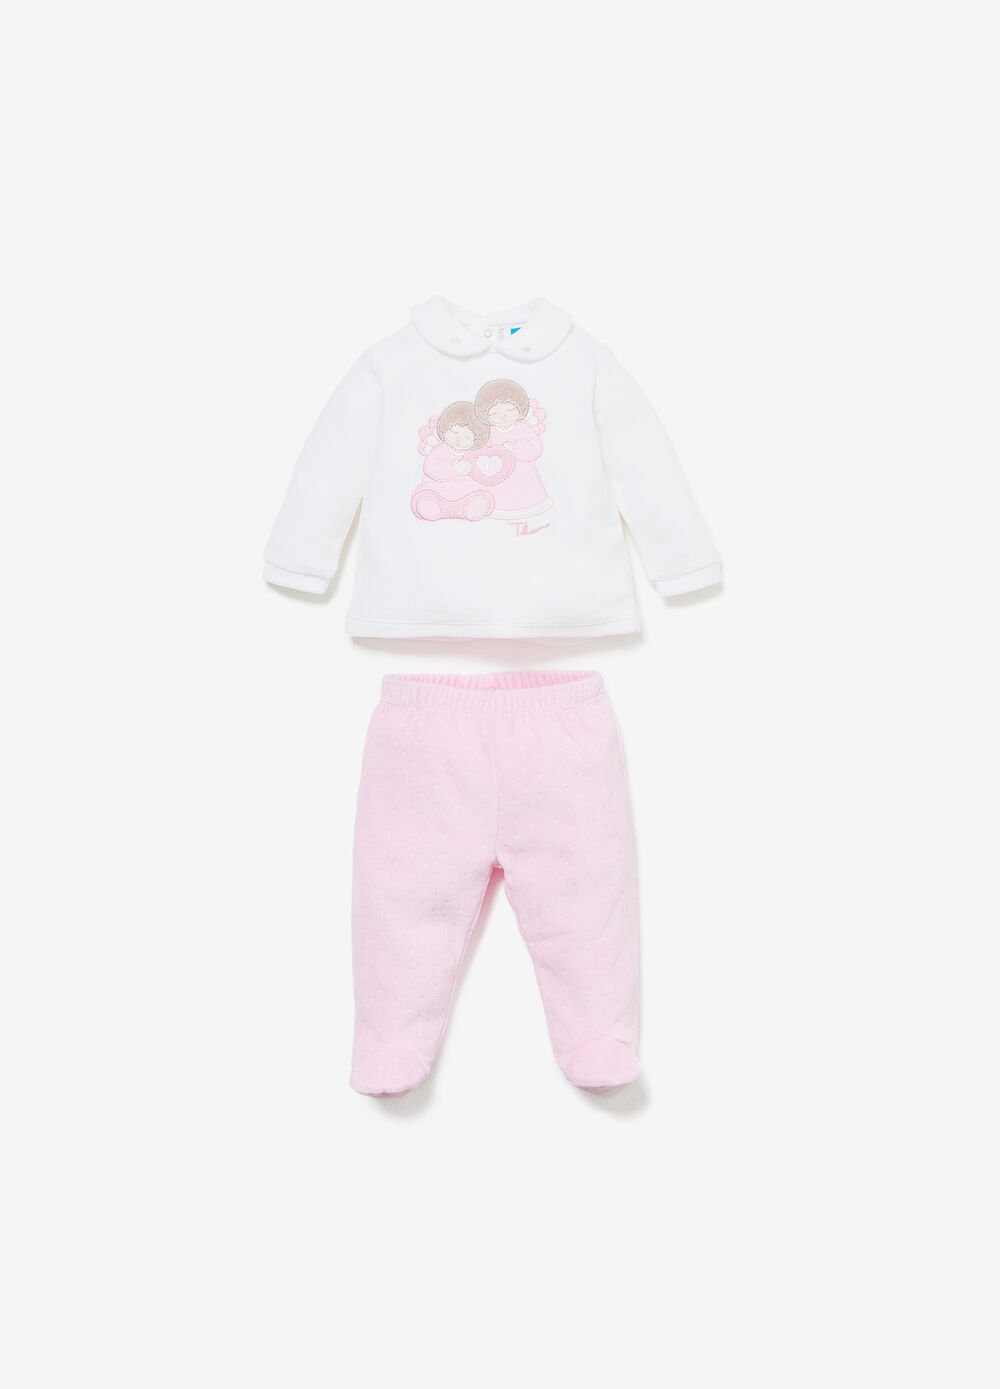 THUN T-shirt and baby leggings set